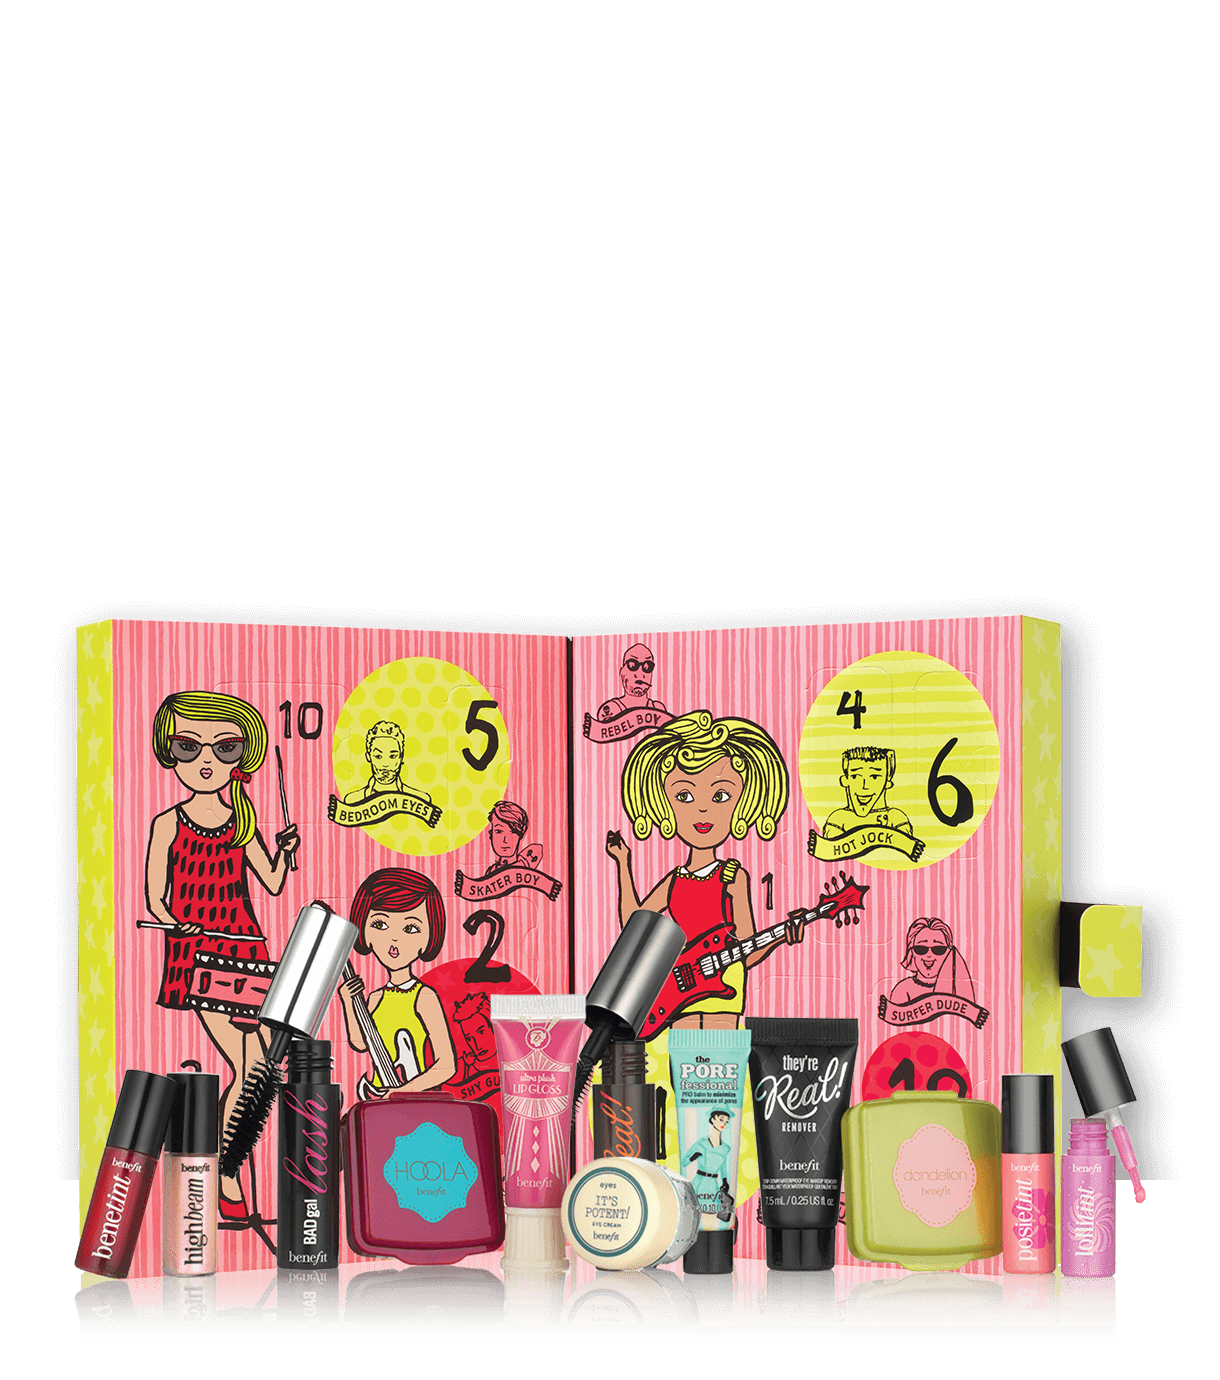 2016 beauty advent calendars available in australia 2016 beauty advent calendar benefit solutioingenieria Choice Image